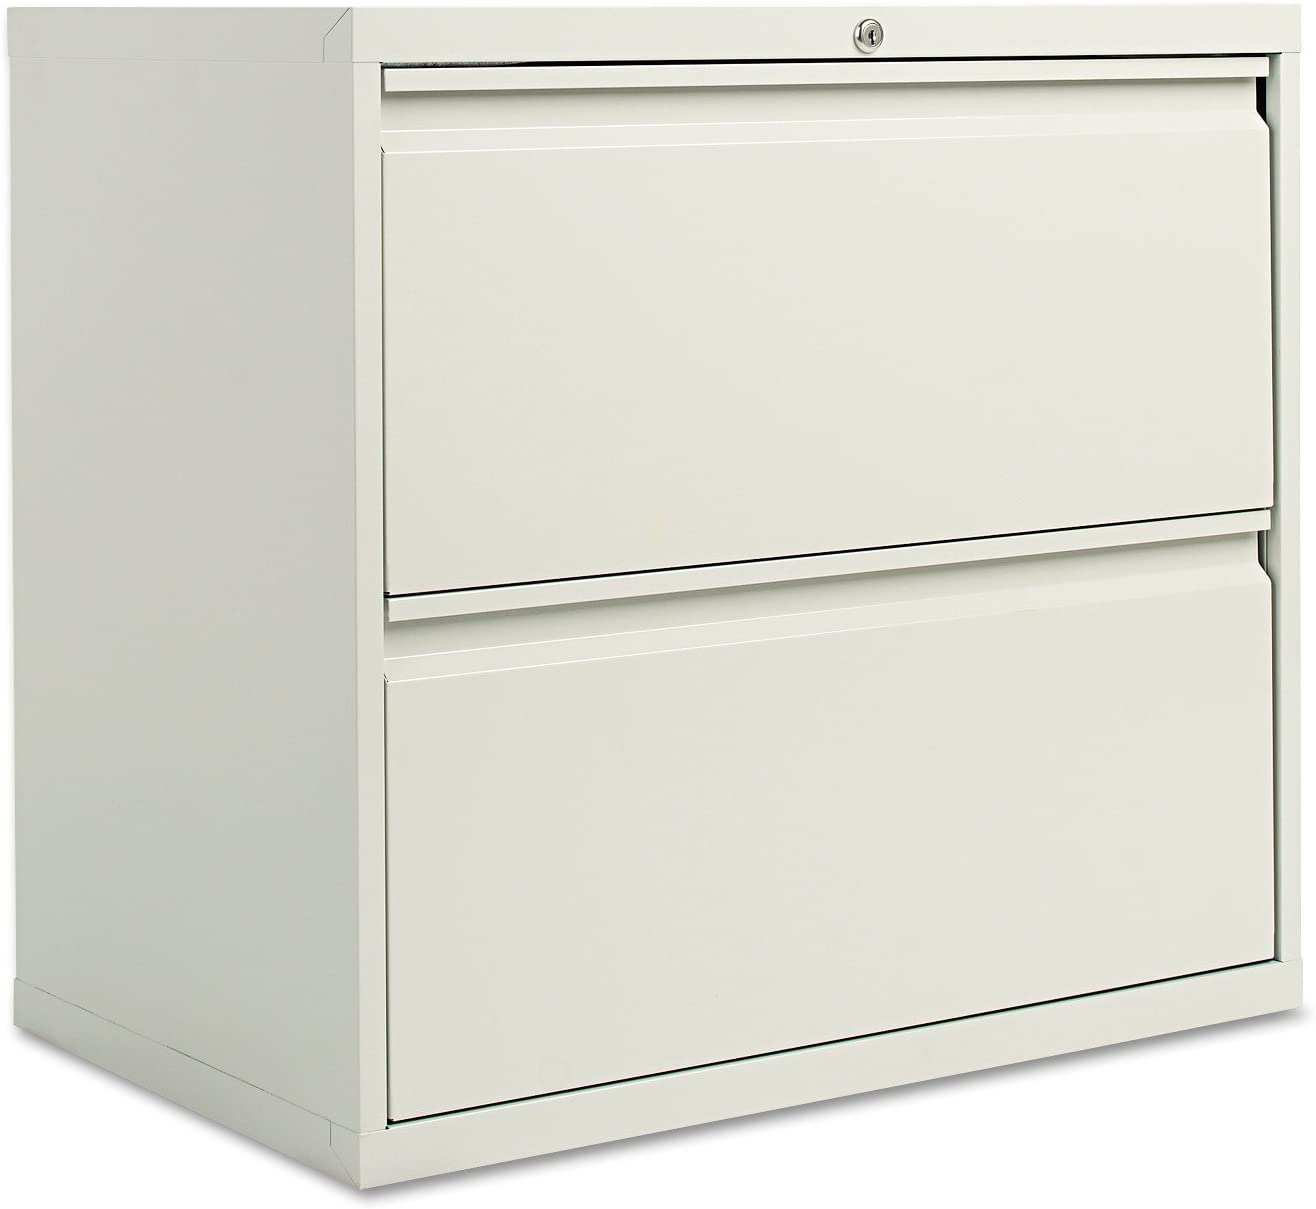 Alera 30 by 19-1/4 by 29-Inch 2-Drawer Lateral File Cabinet, Light Gray